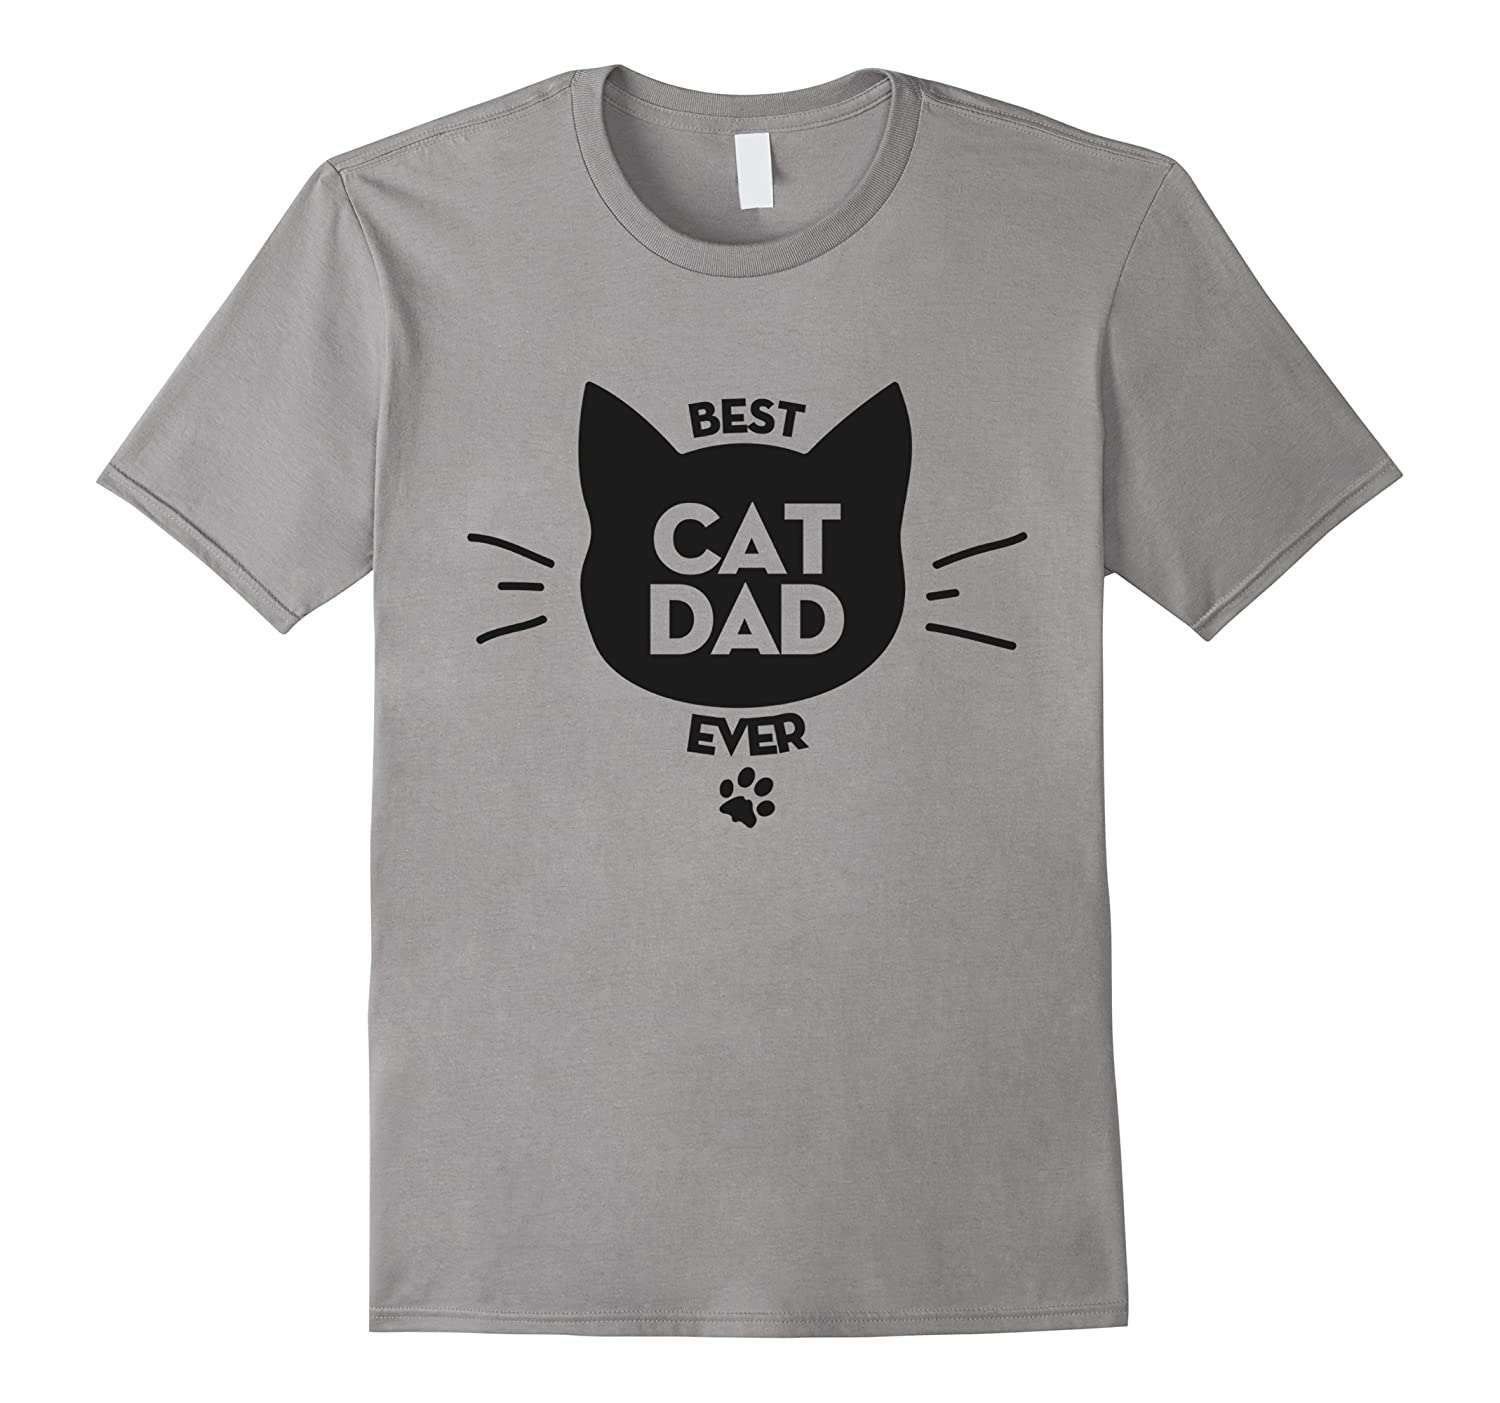 Best Cat Dad Ever Tshirt-Awesome Dad Funny Father Day TShirt- TPT